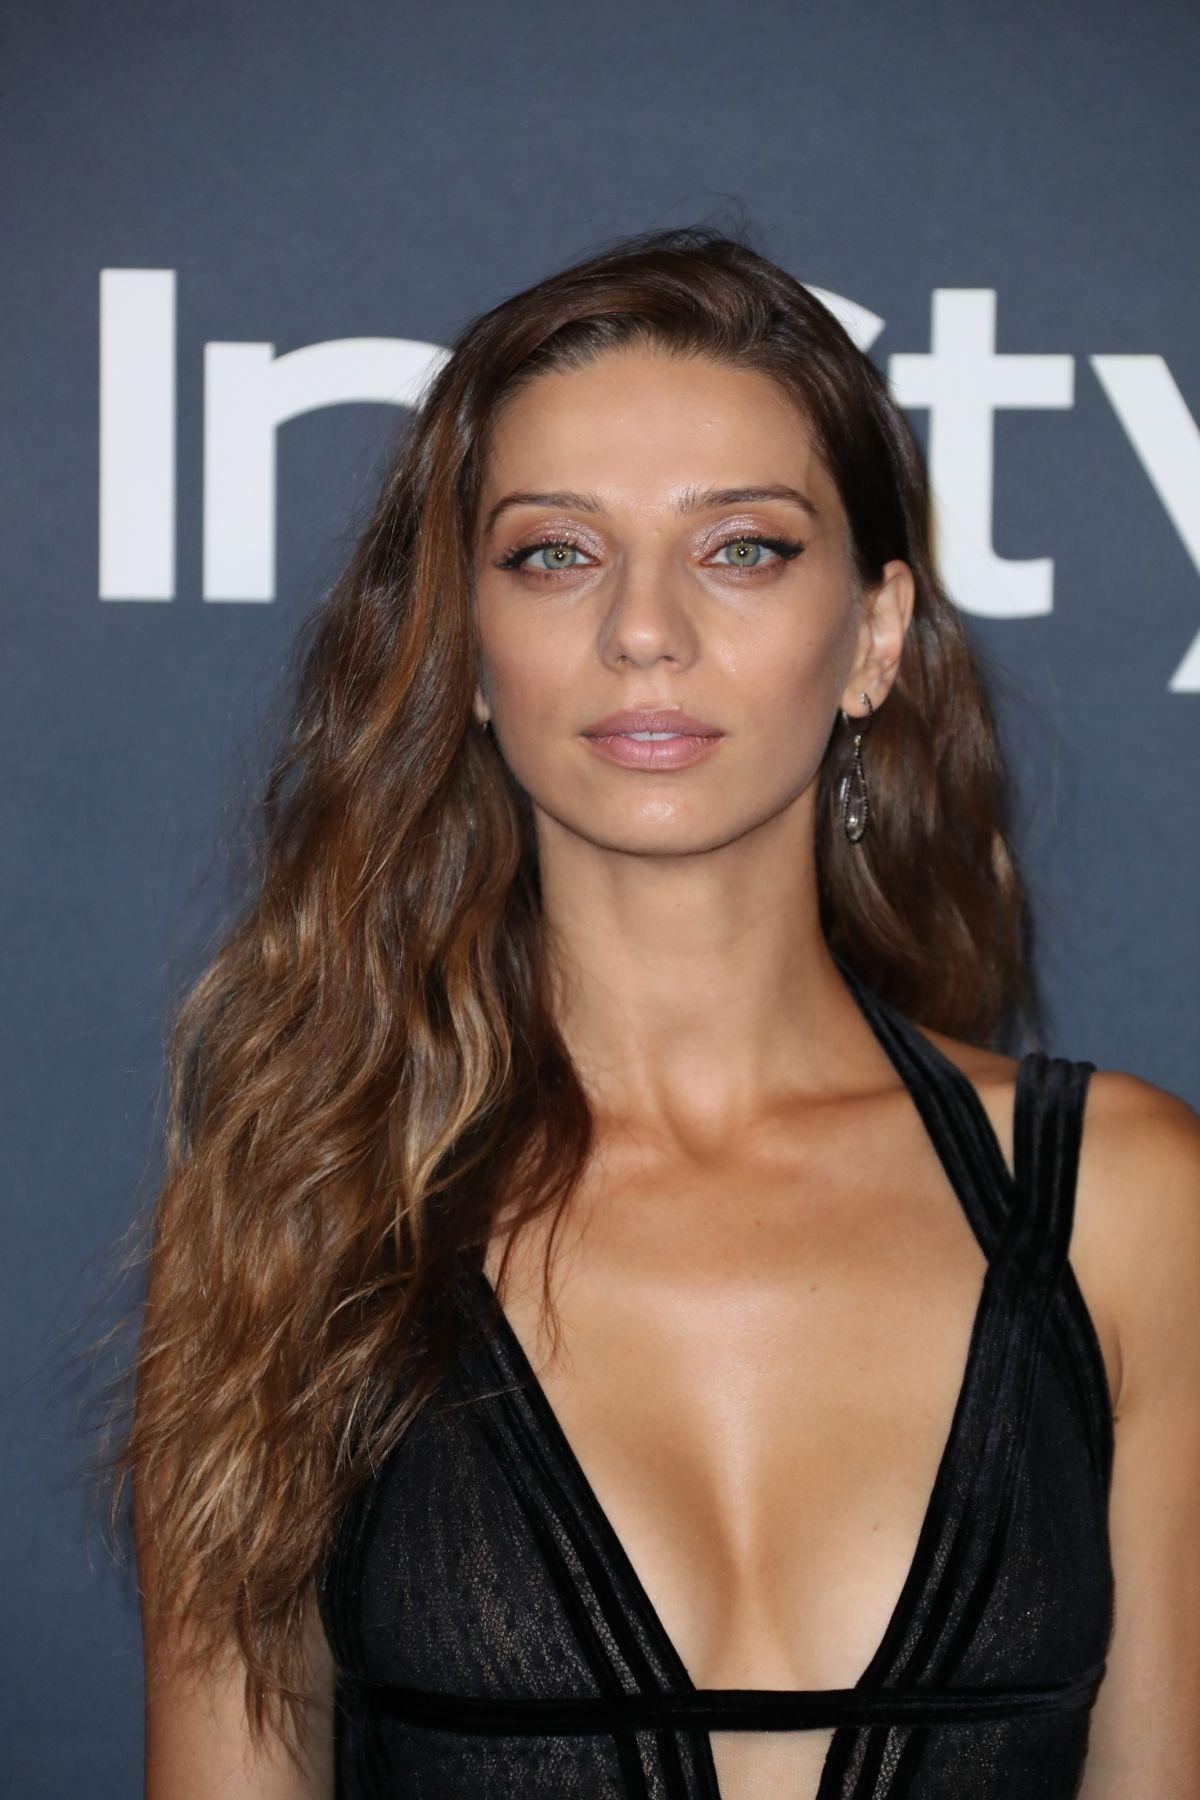 Fotos Angela Sarafyan nudes (45 photos), Sexy, Leaked, Feet, panties 2020